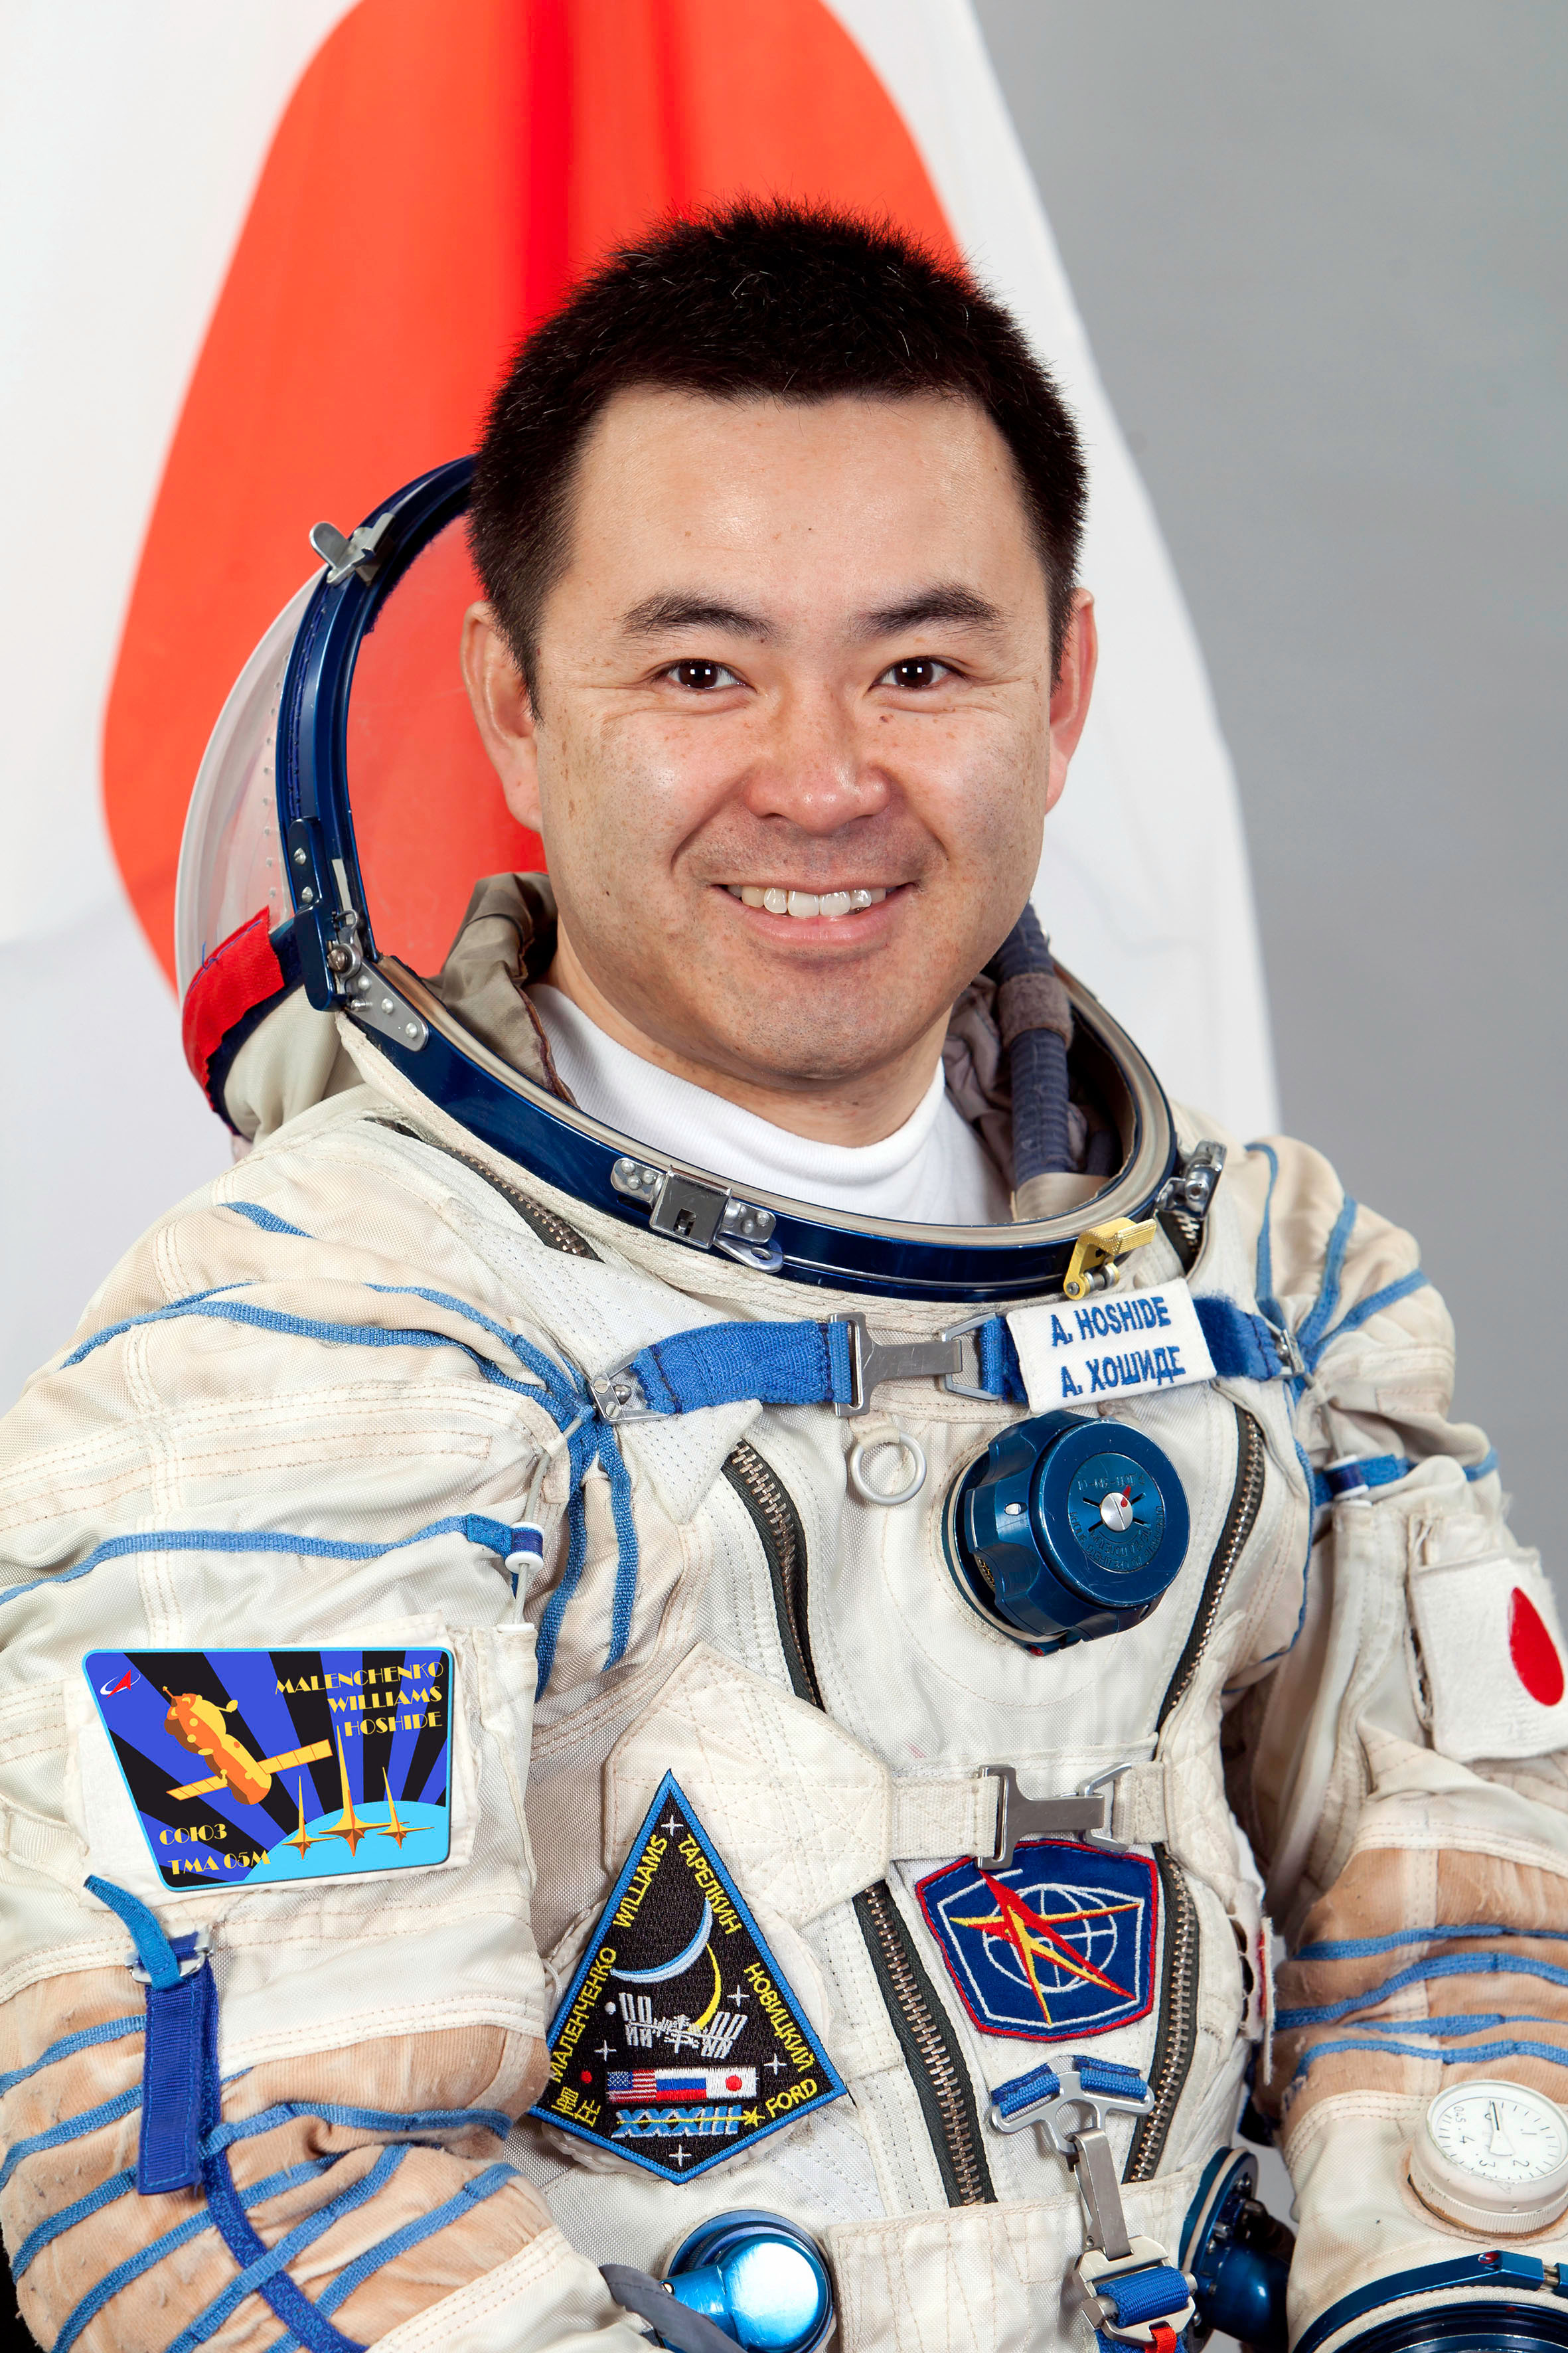 famous astronauts and cosmonauts who contributed in space explorations - photo #3